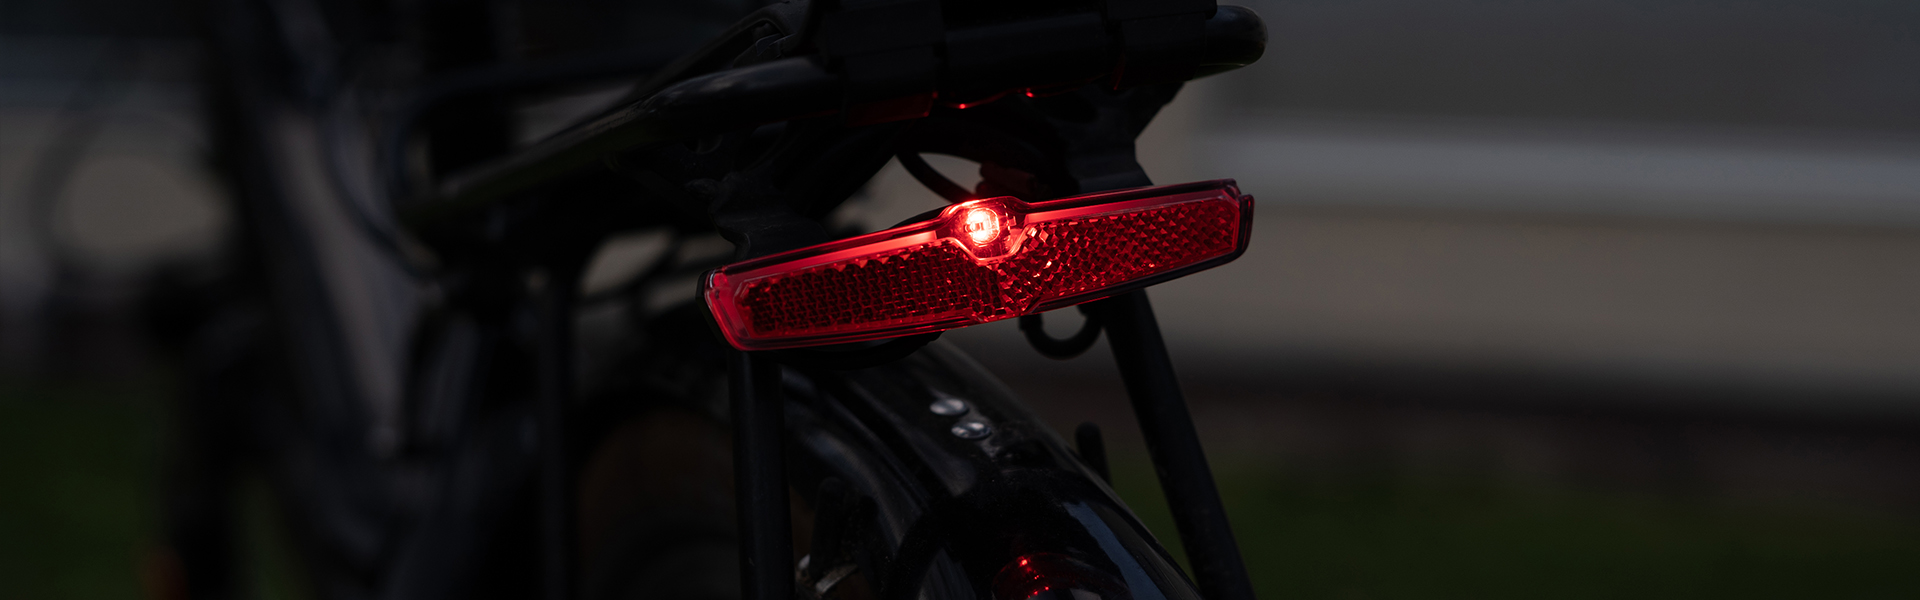 Sate-lite CREE ebike light  StVZO ISO6742-1 ECE eletric bike tail light with ISO6742-2 Z ECE reflector mount on Carrier 6-48V